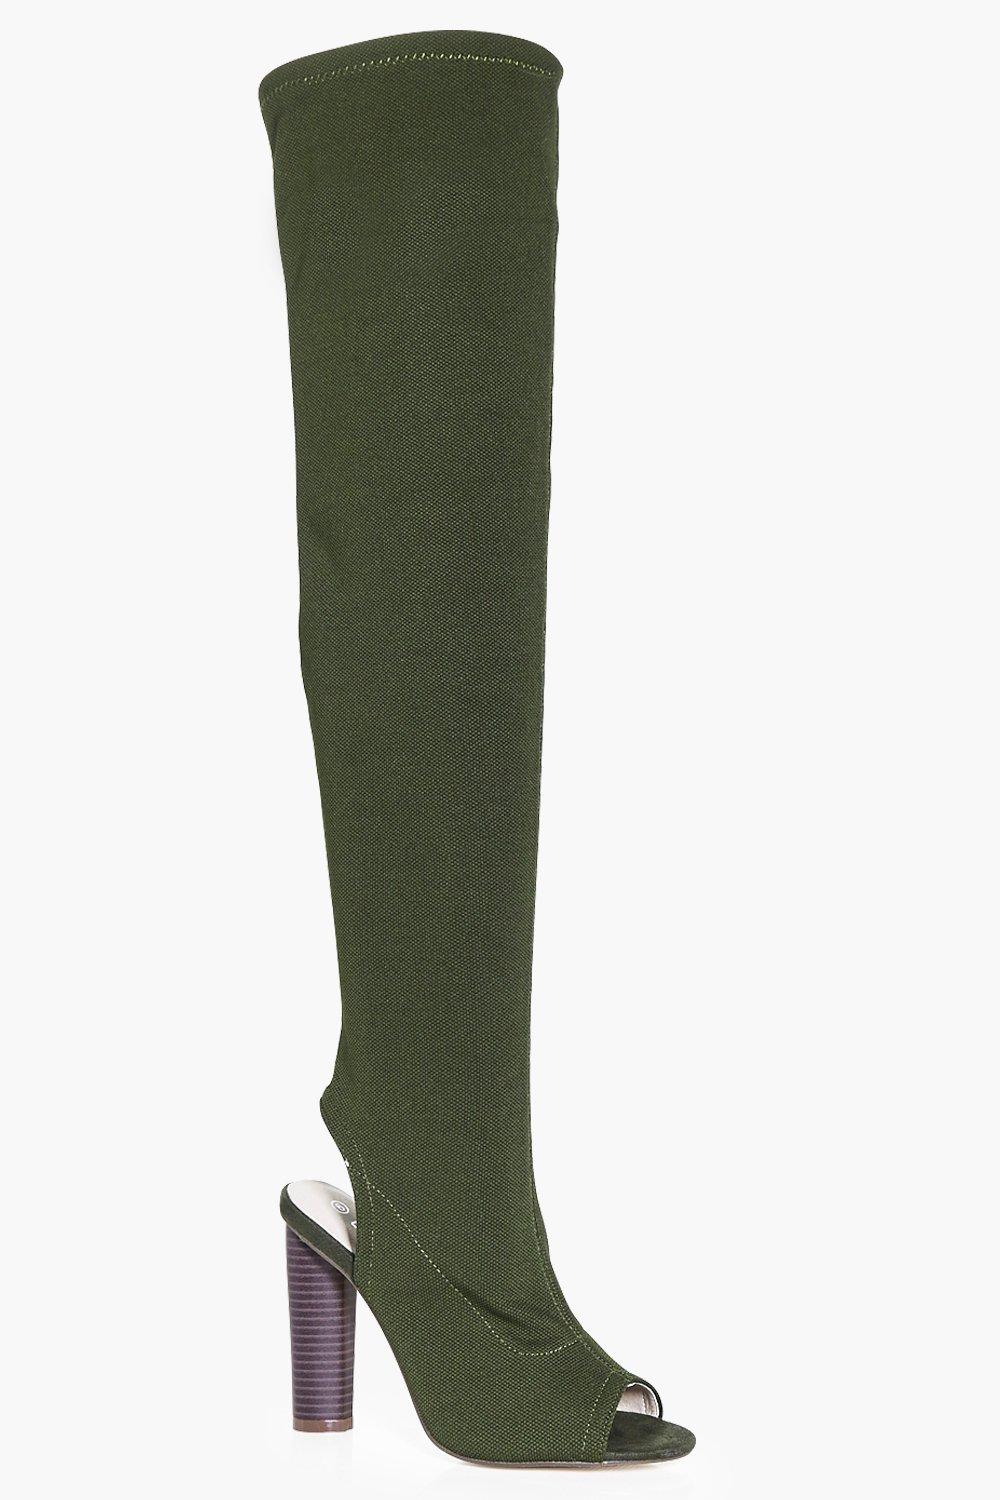 Lena Knitted Peeptoe Over The Knee Boot